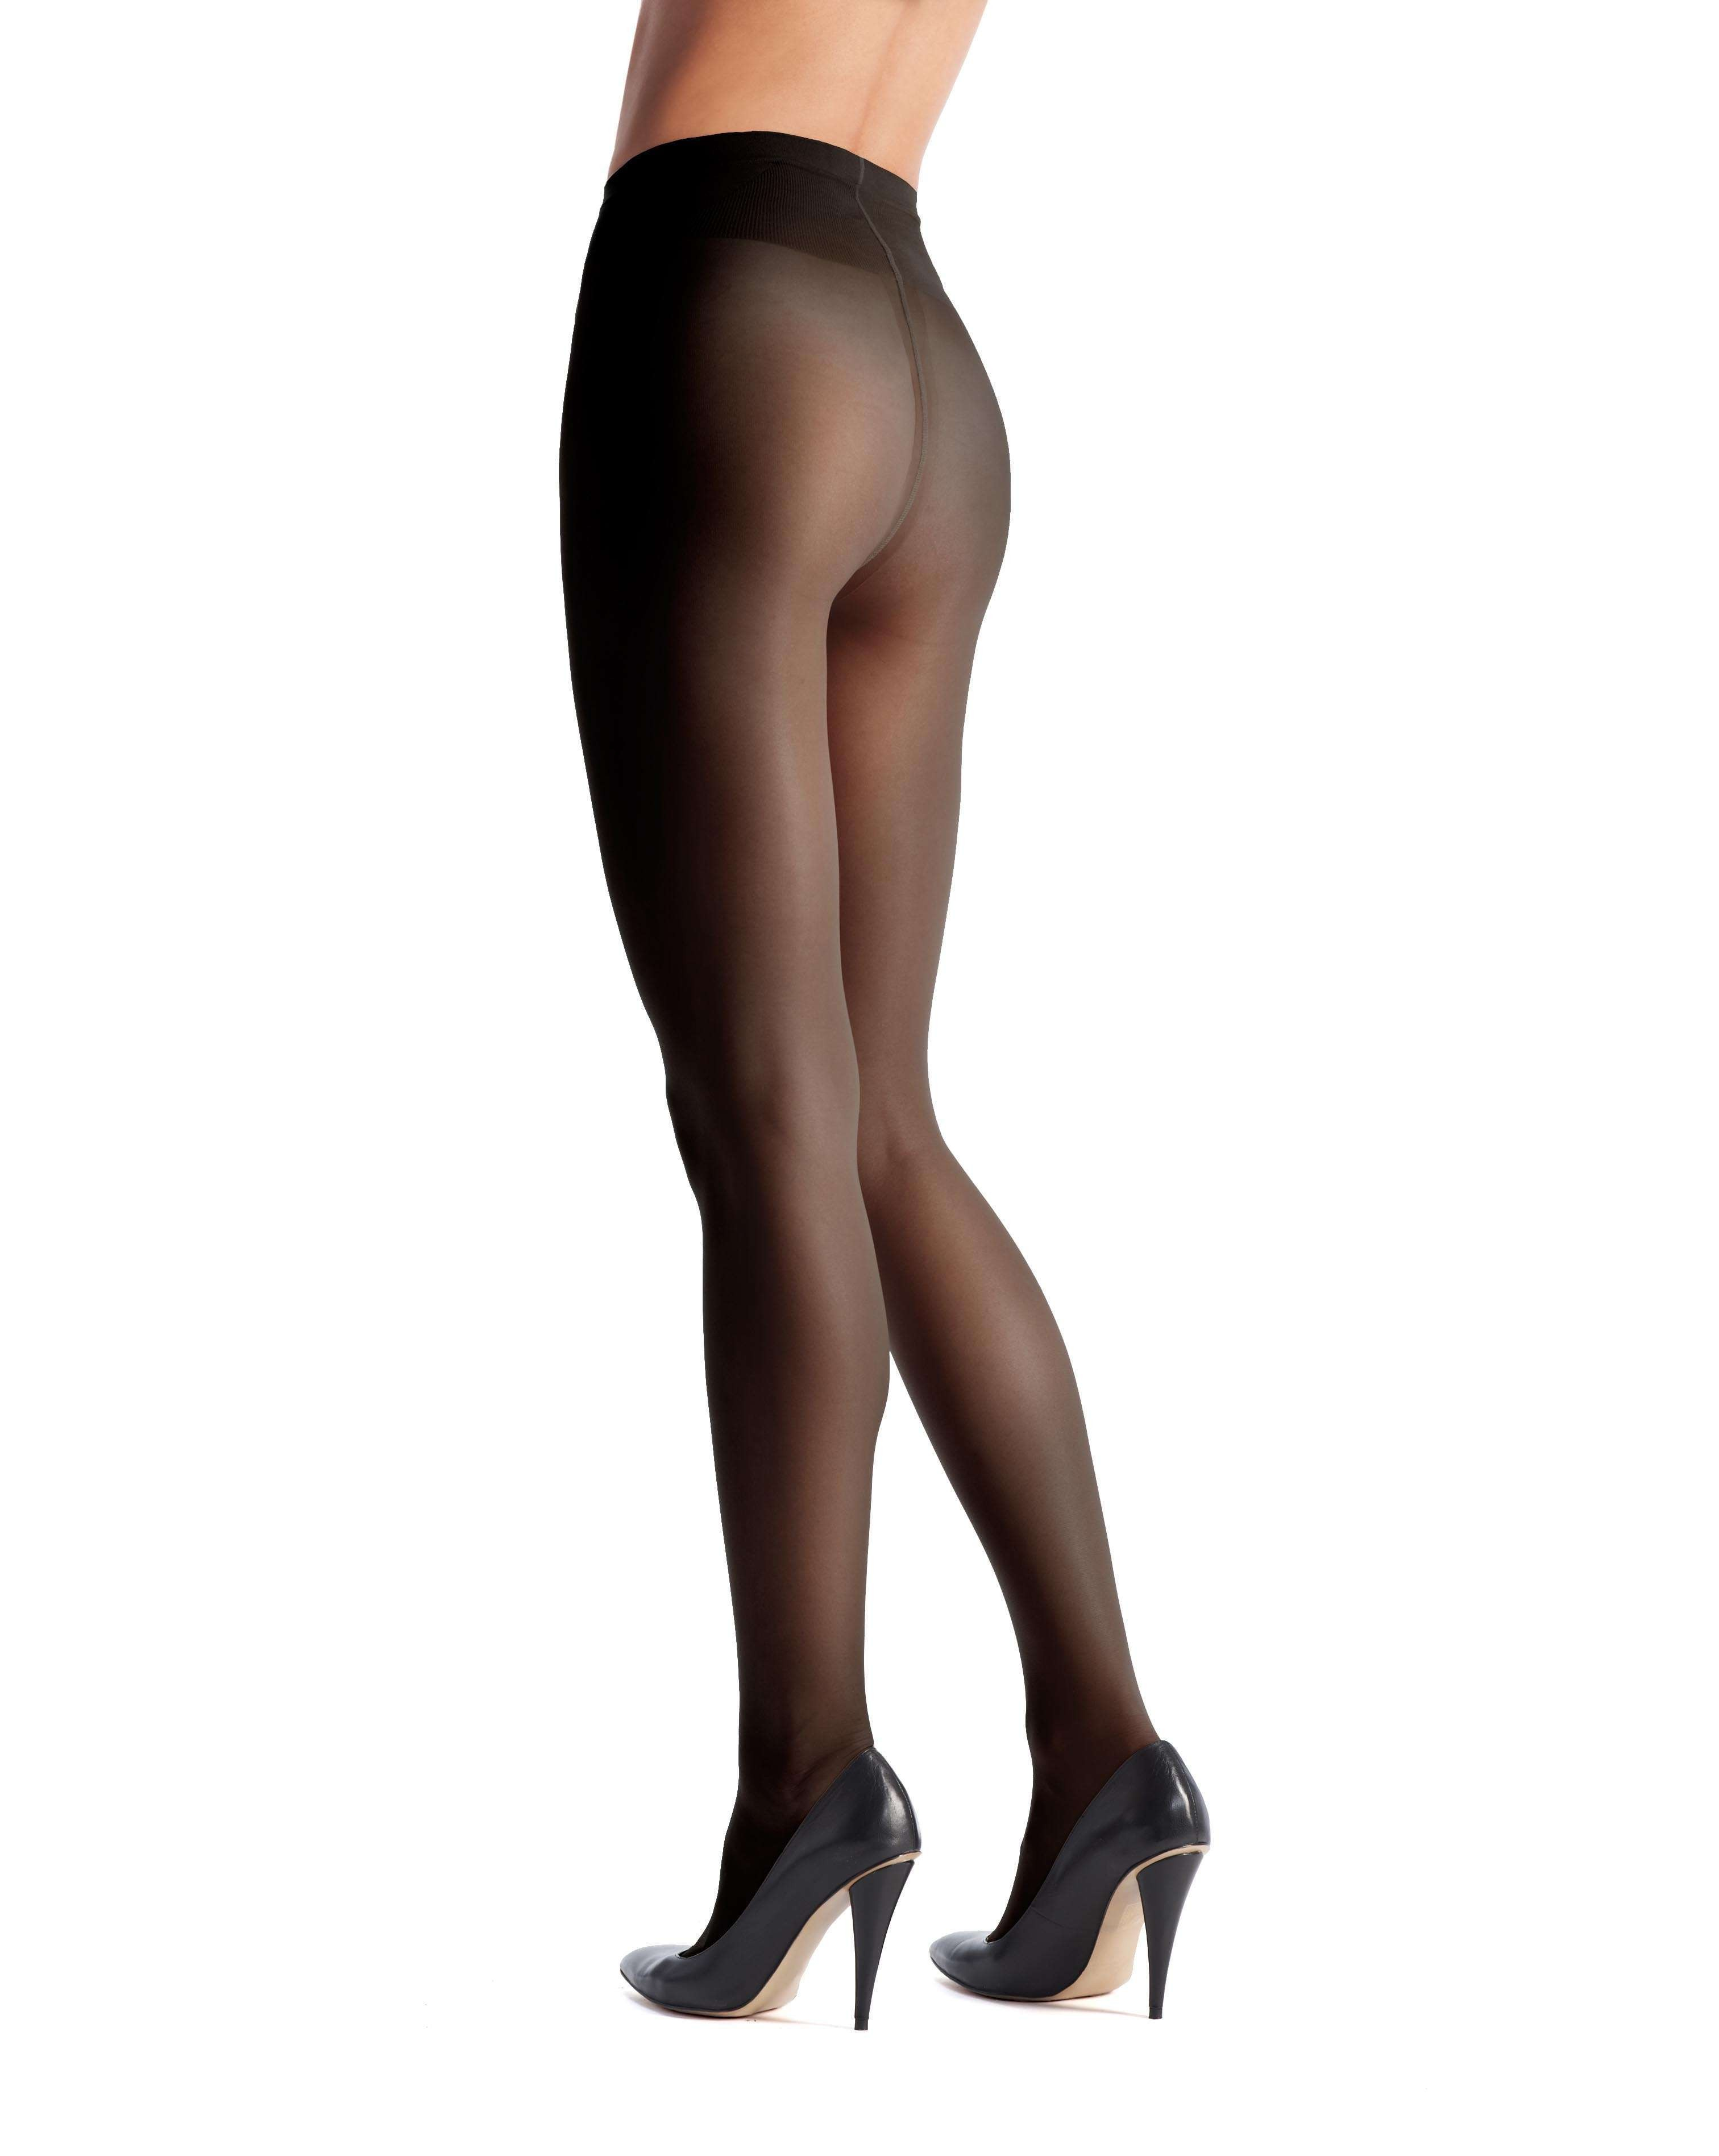 Details about Oroblu Tights Different 15, pantyhose, sheer to waist, anatomical top